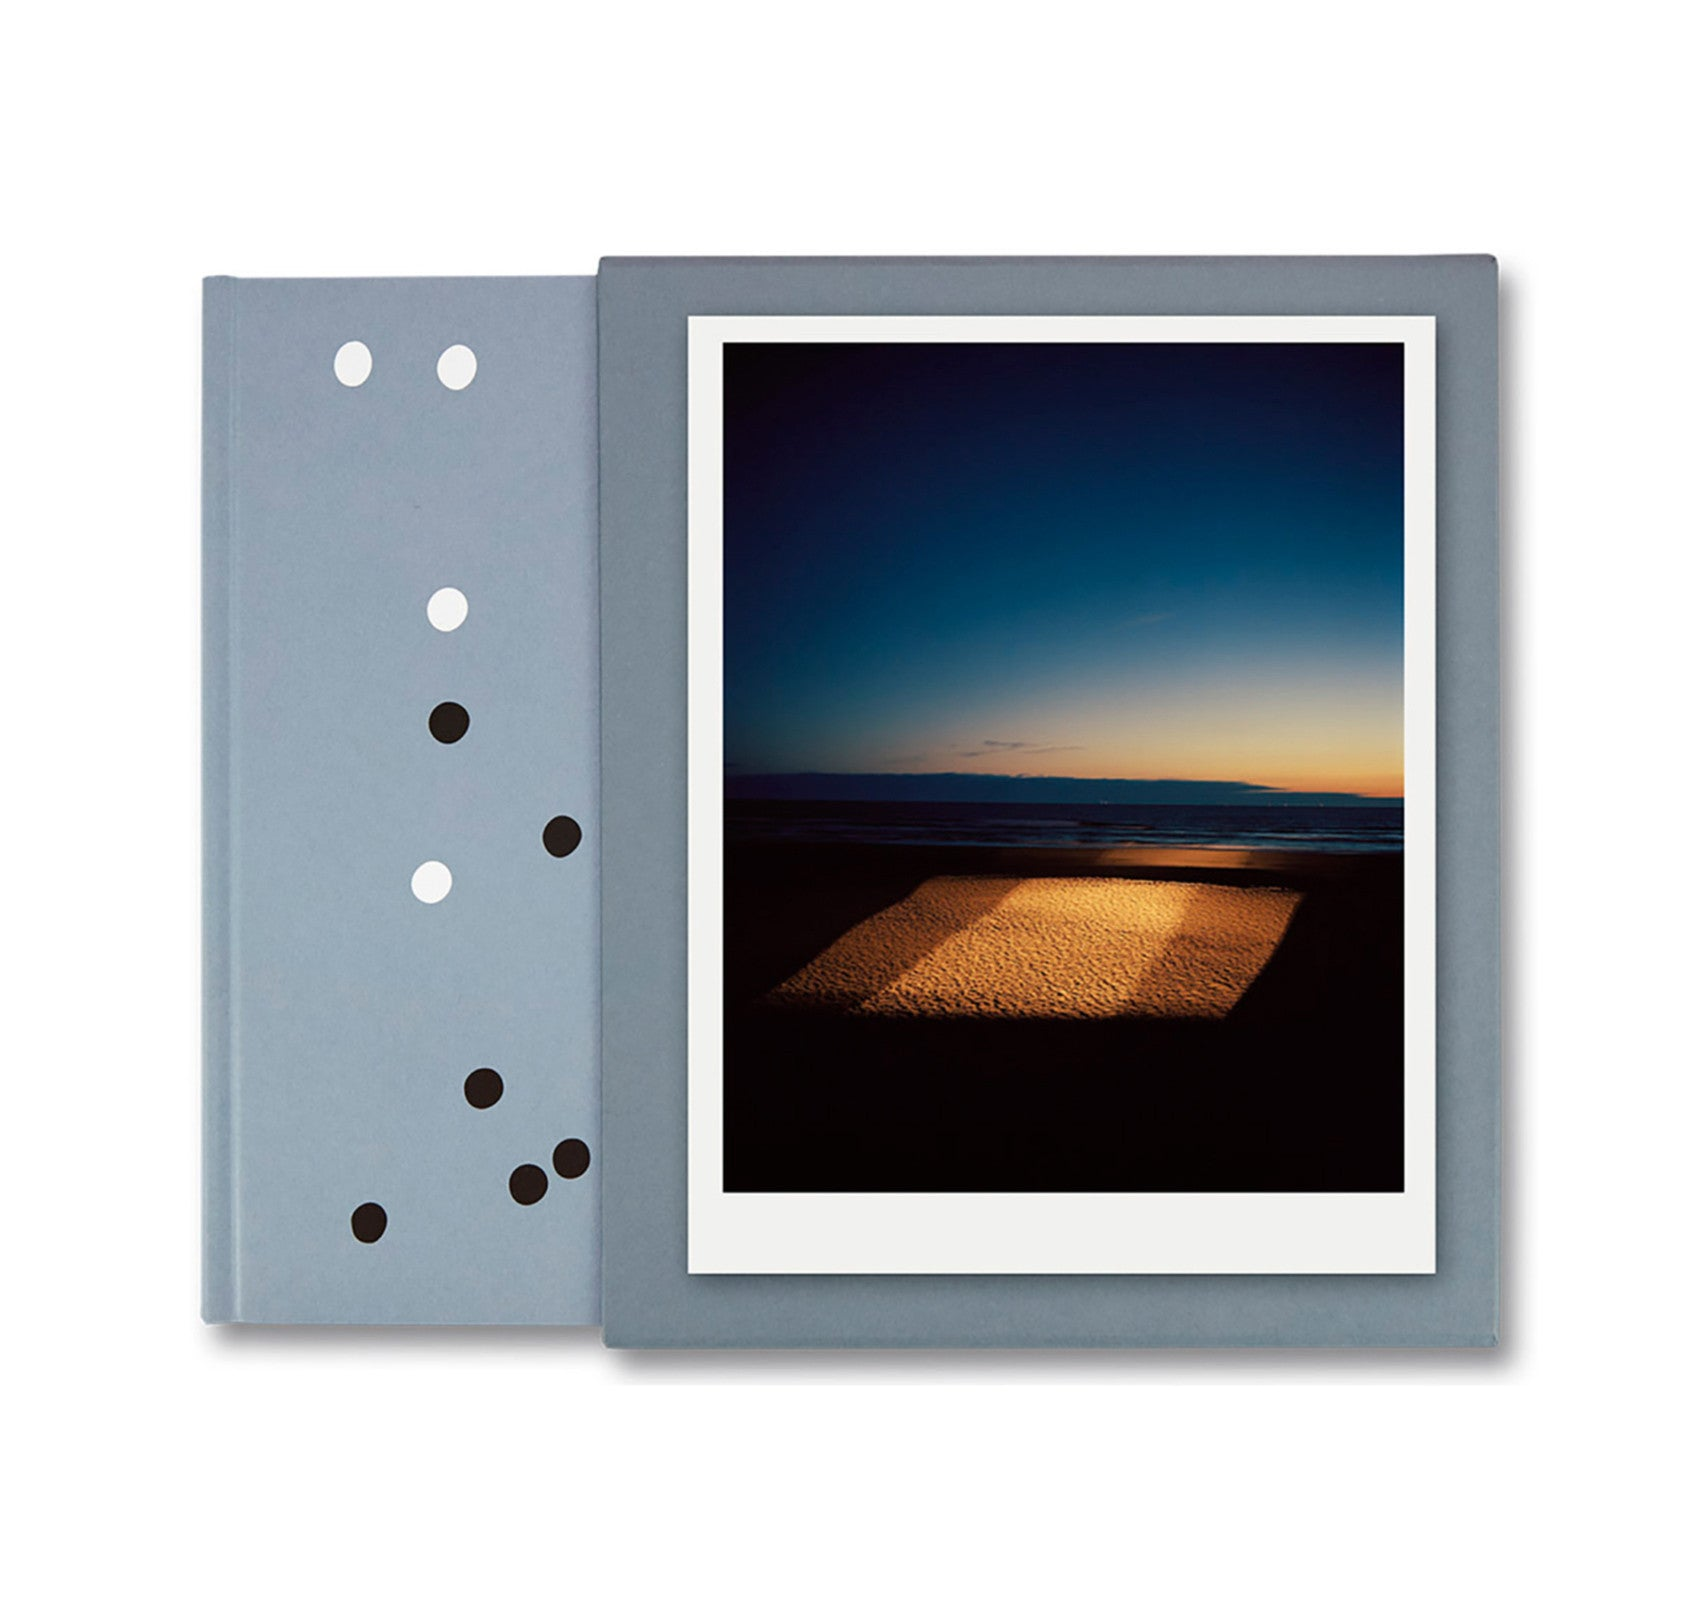 ZZYZX by Gregory Halpern [SPECIAL EDITION (BEACH)]